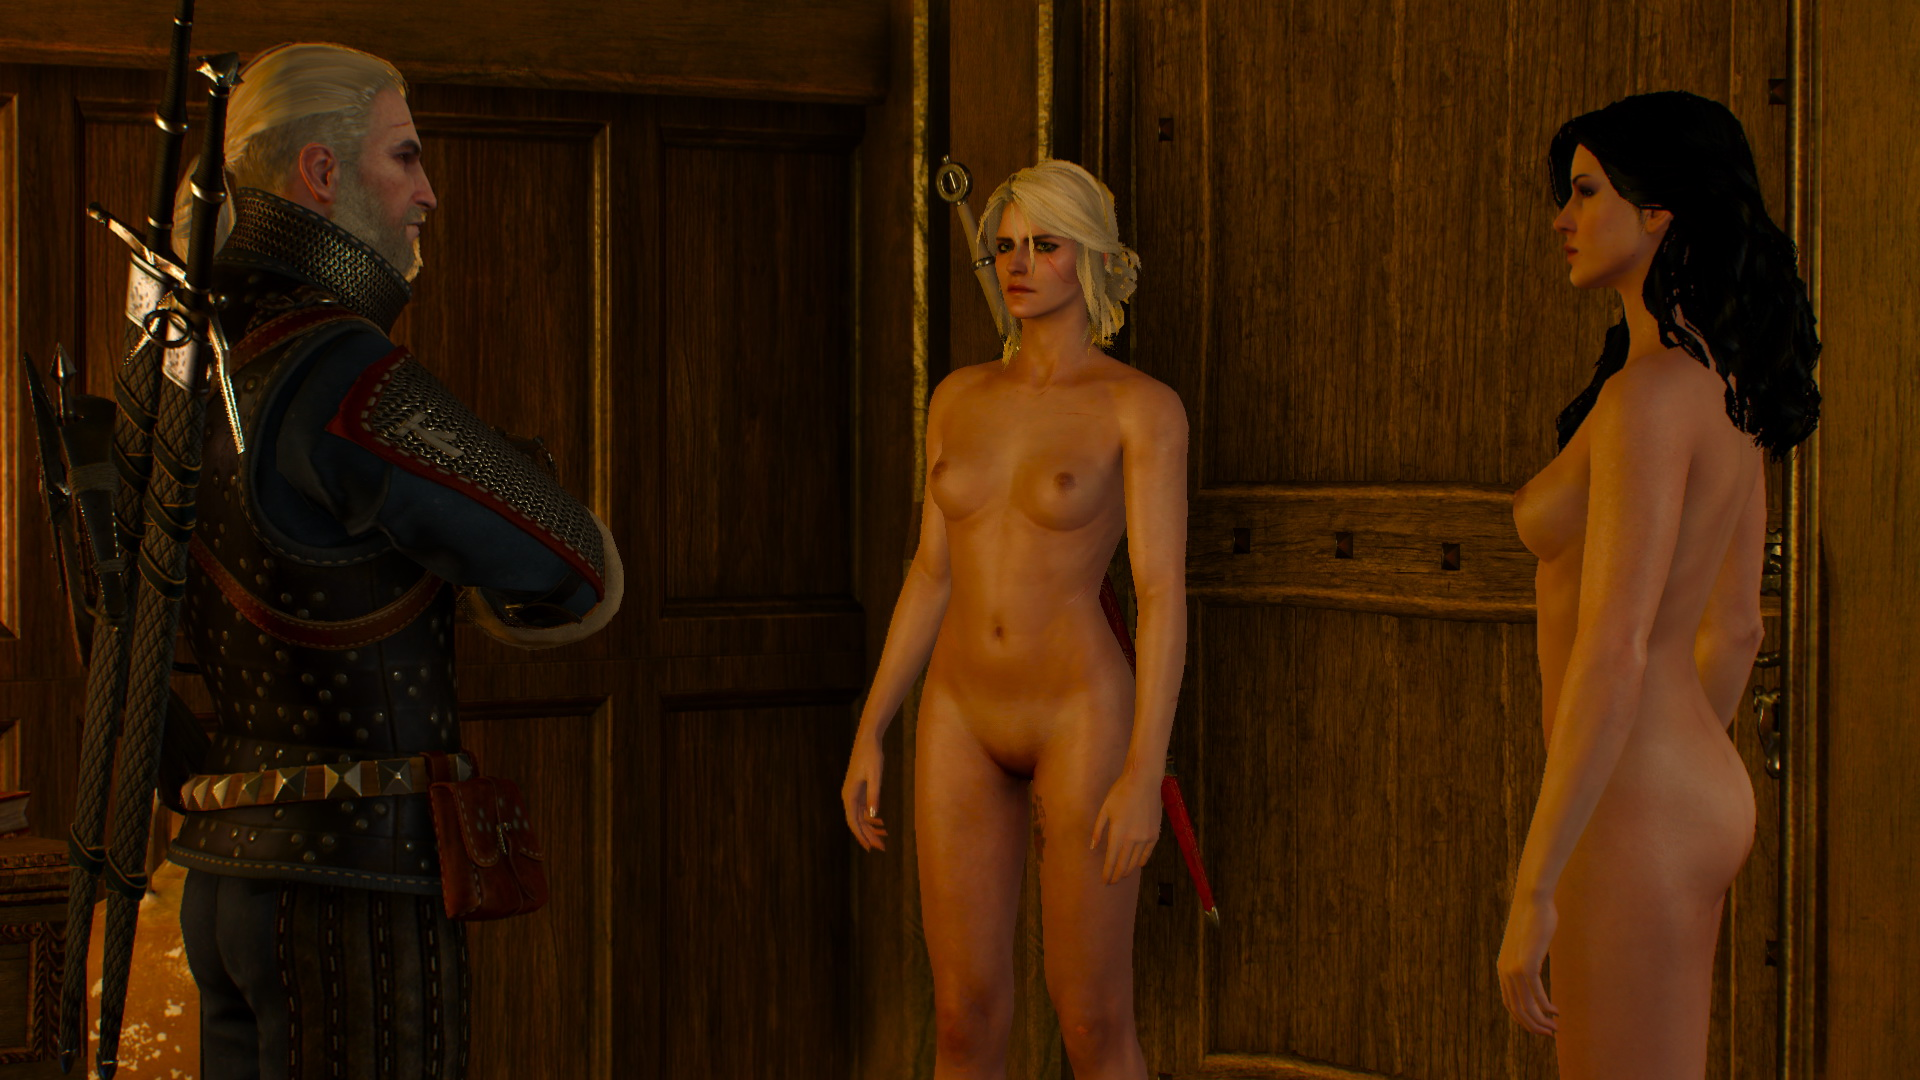 Downloadable nude girl pictures for ps porncraft galleries